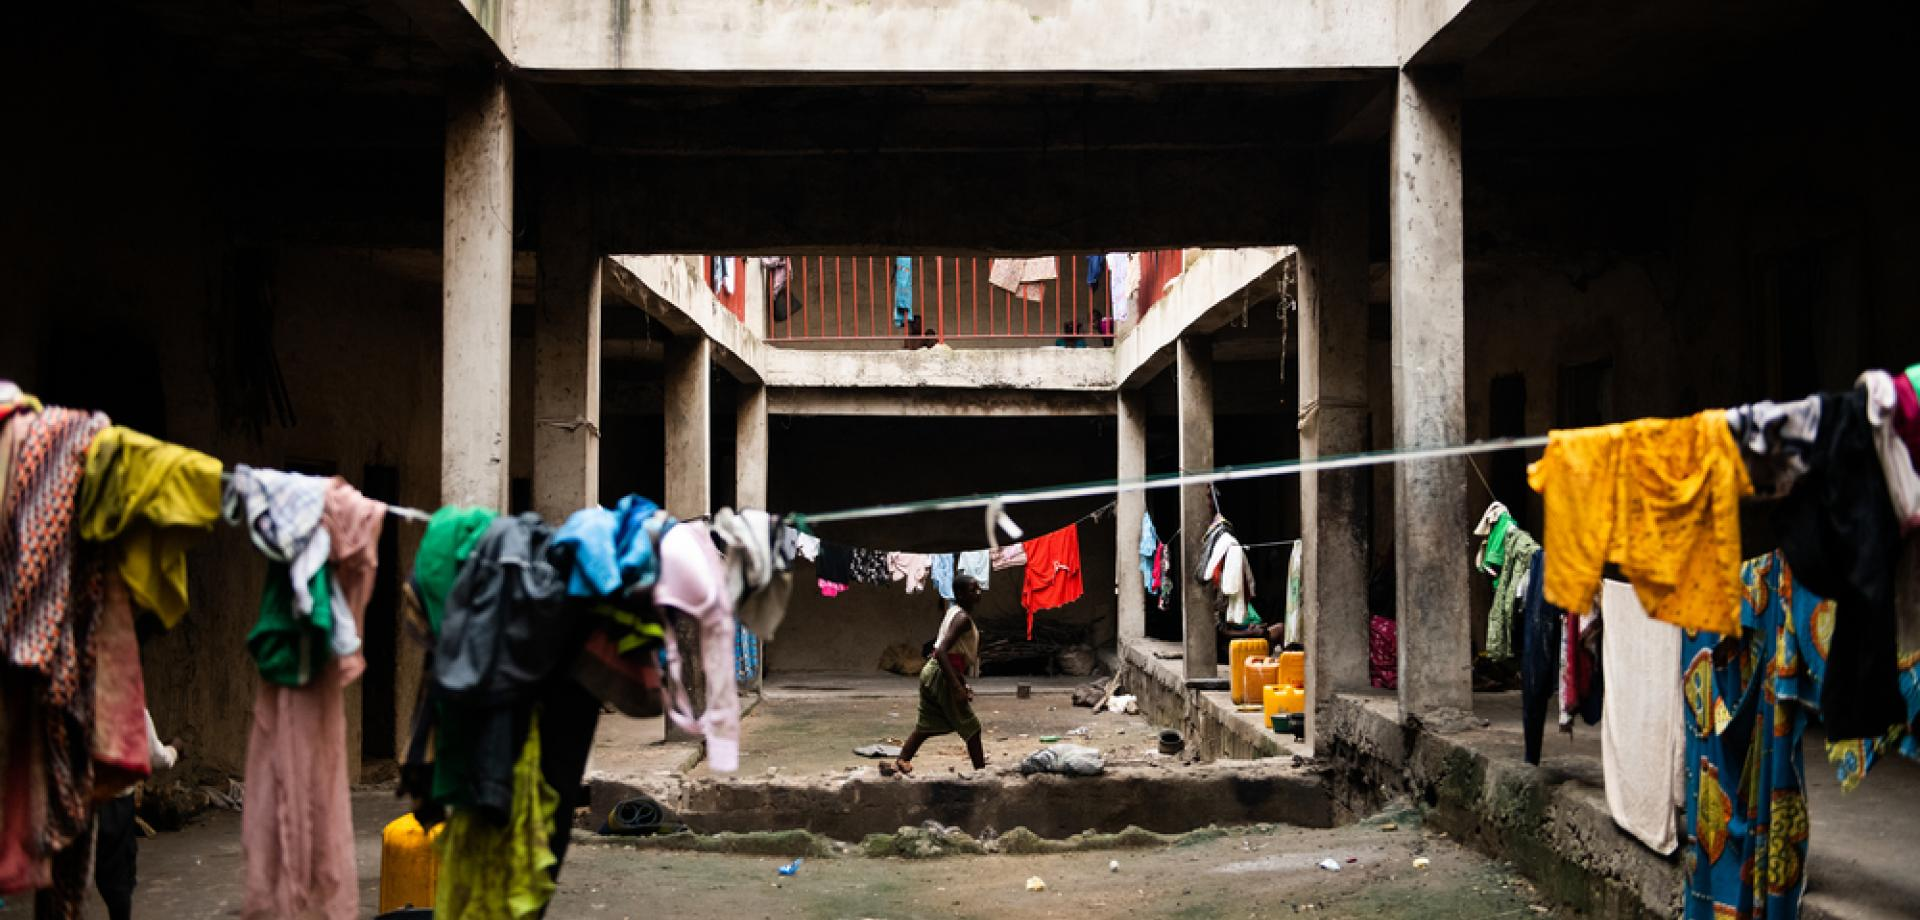 Conditions in a camp for people displaced by armed conflict in Benue state, Nigeria